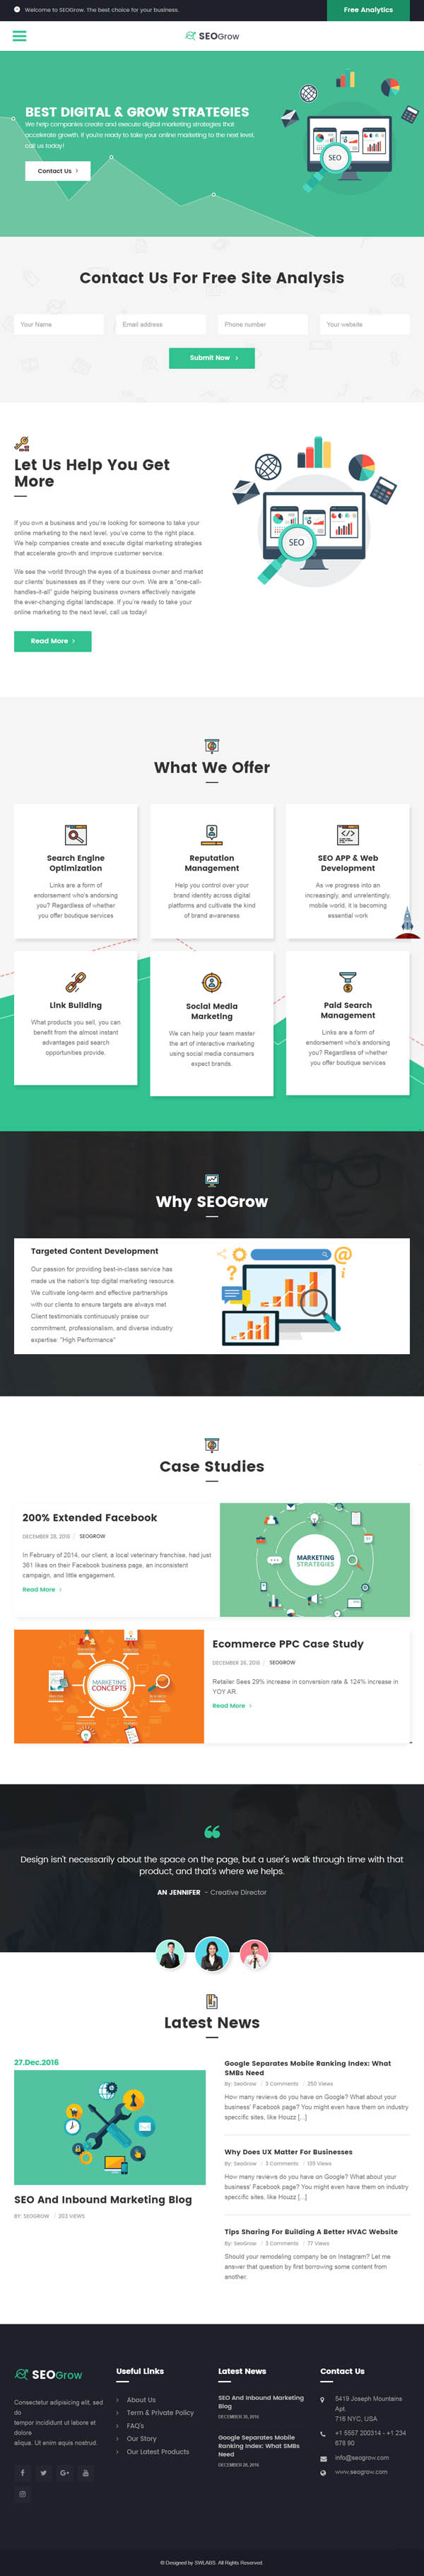 SEO Grow – SEO, Online Digital Marketing, Growth Hacking WordPress Theme